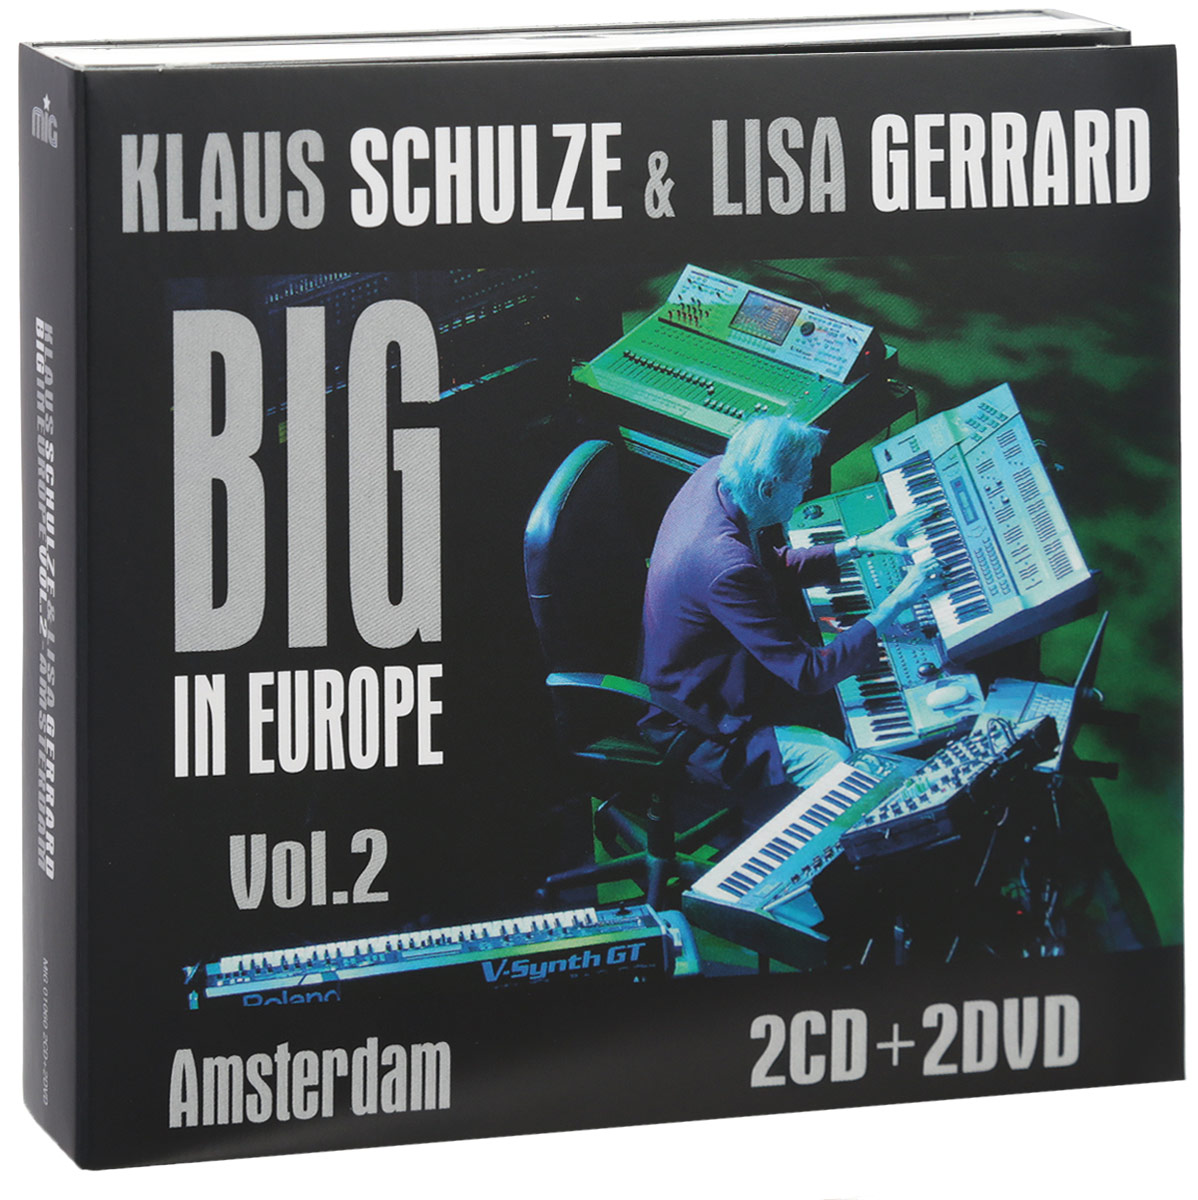 Клаус Шульце,Лайза Джеррард Klaus Schulze & Lisa Gerrard. Big In Europe Vol. 2. Amsterdam (2 CD + 2 DVD) reakosound 6201a 6 2 inch 6201a audio dvd sb sd bluetooth 2 din car cd player 1 3 inch color cmos camera